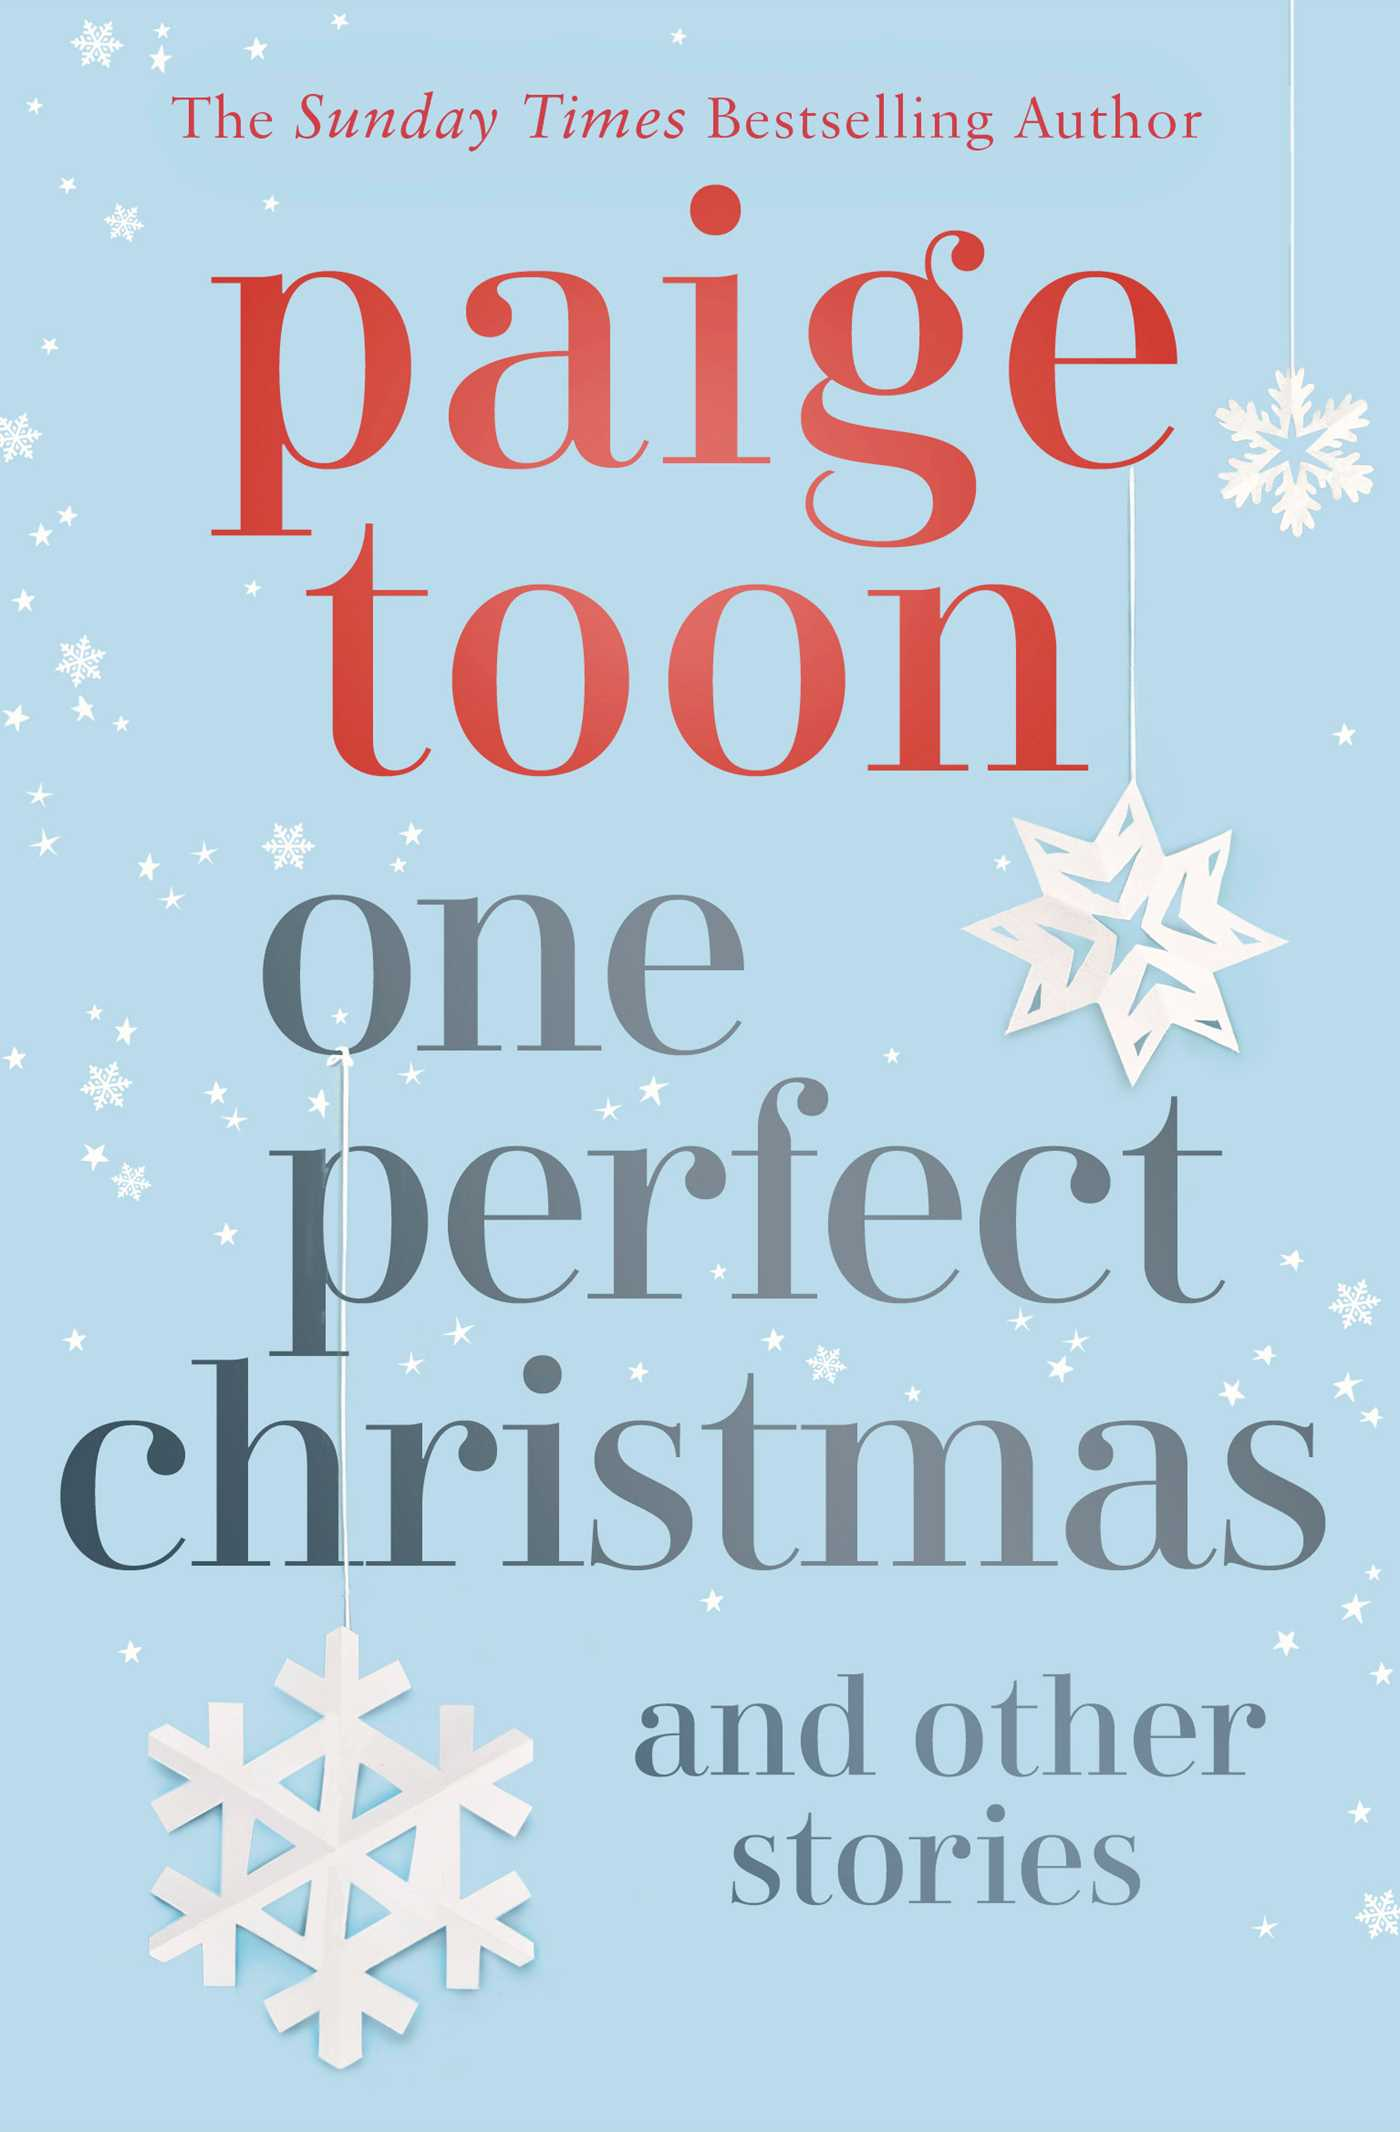 One perfect christmas and other stories 9781471179440 hr